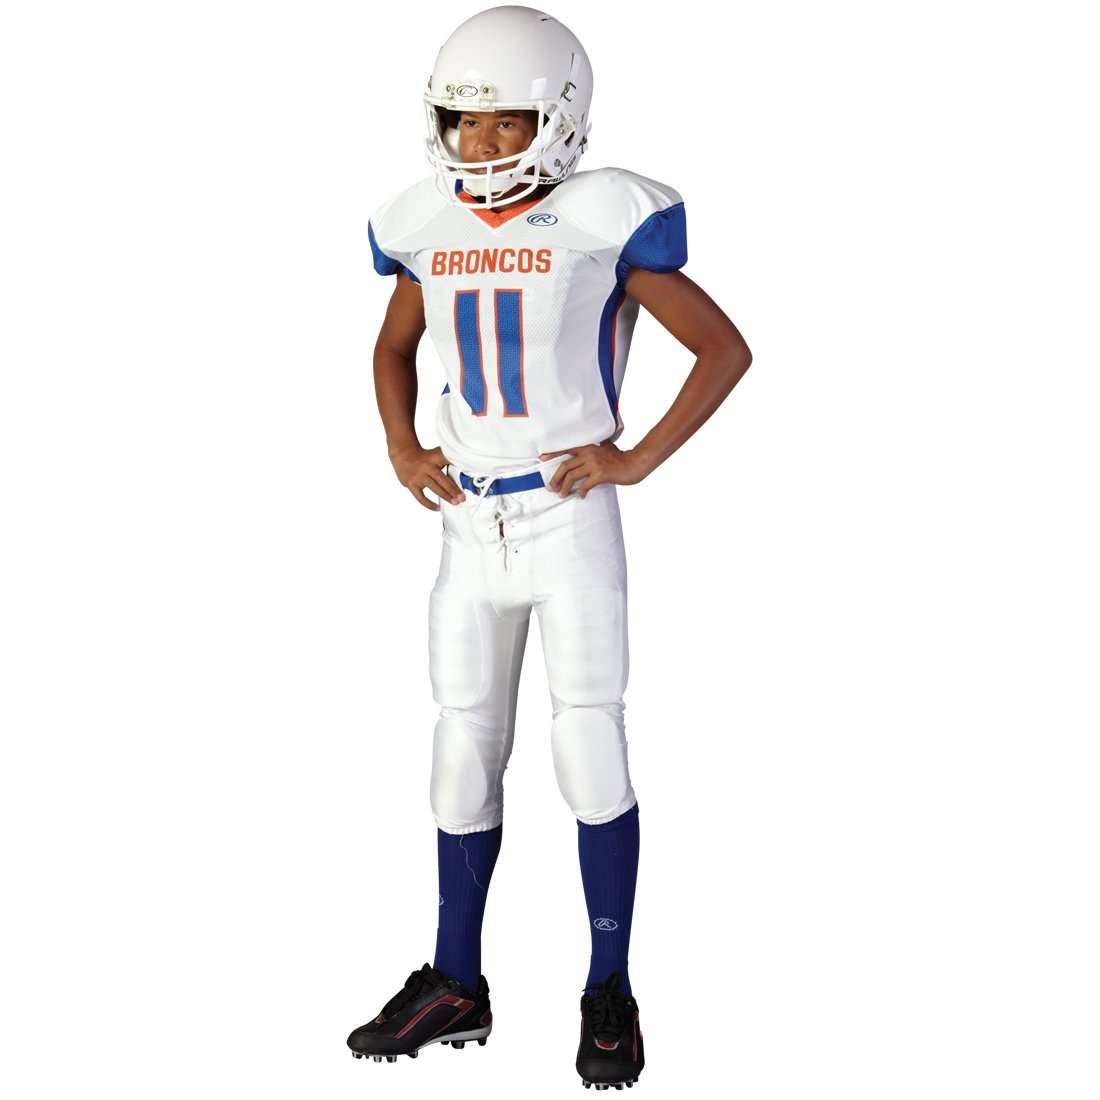 bcb120a06 Rawlings Youth Sublimated Football Jersey - Broncos – League Outfitters